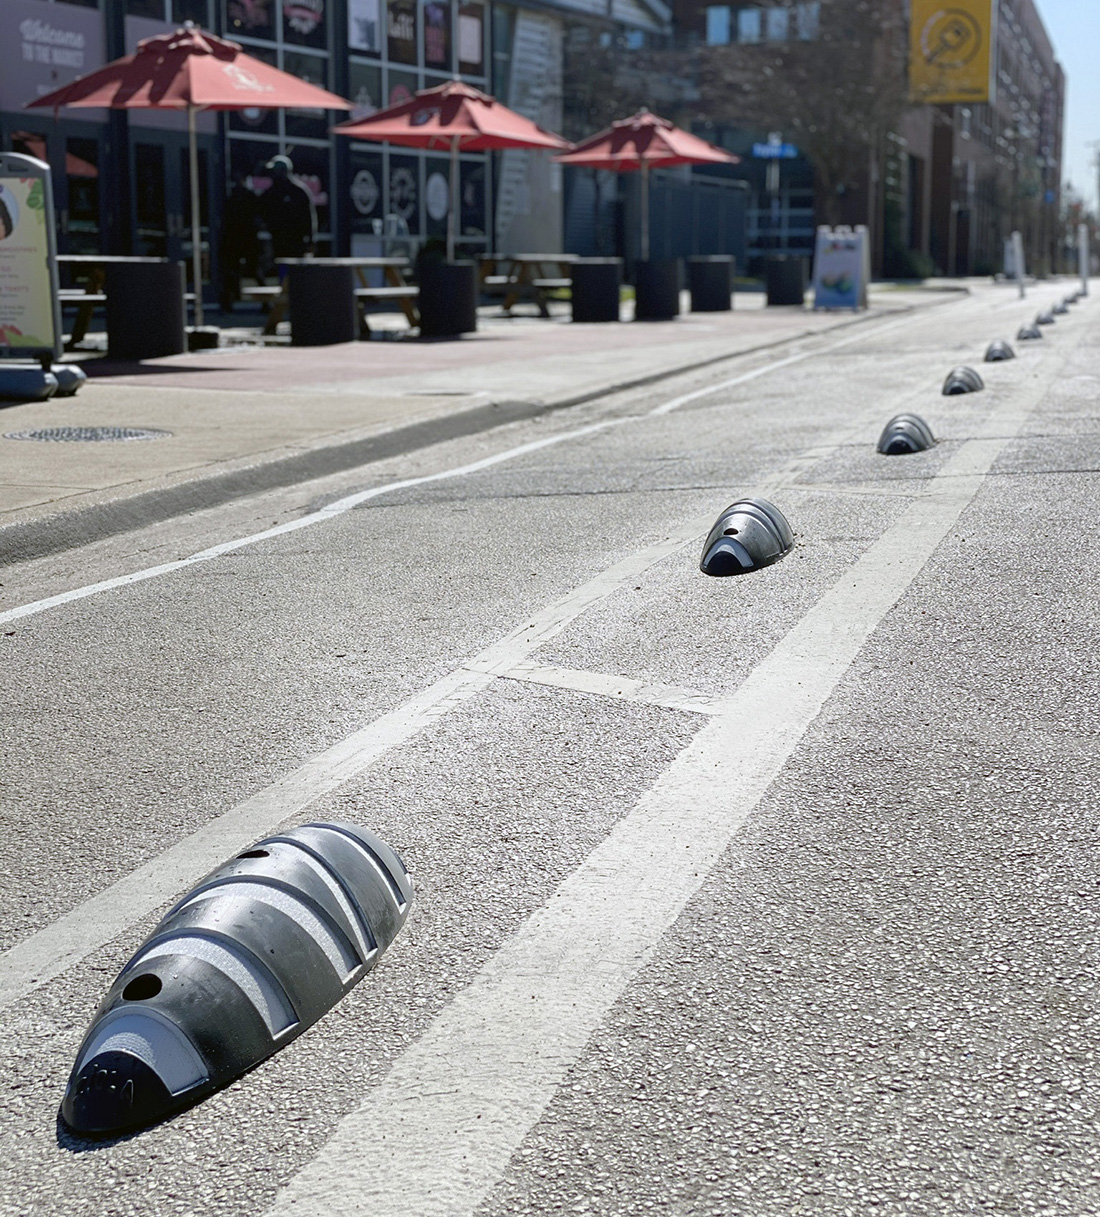 Zicla Zebra Cycle Lane Separator